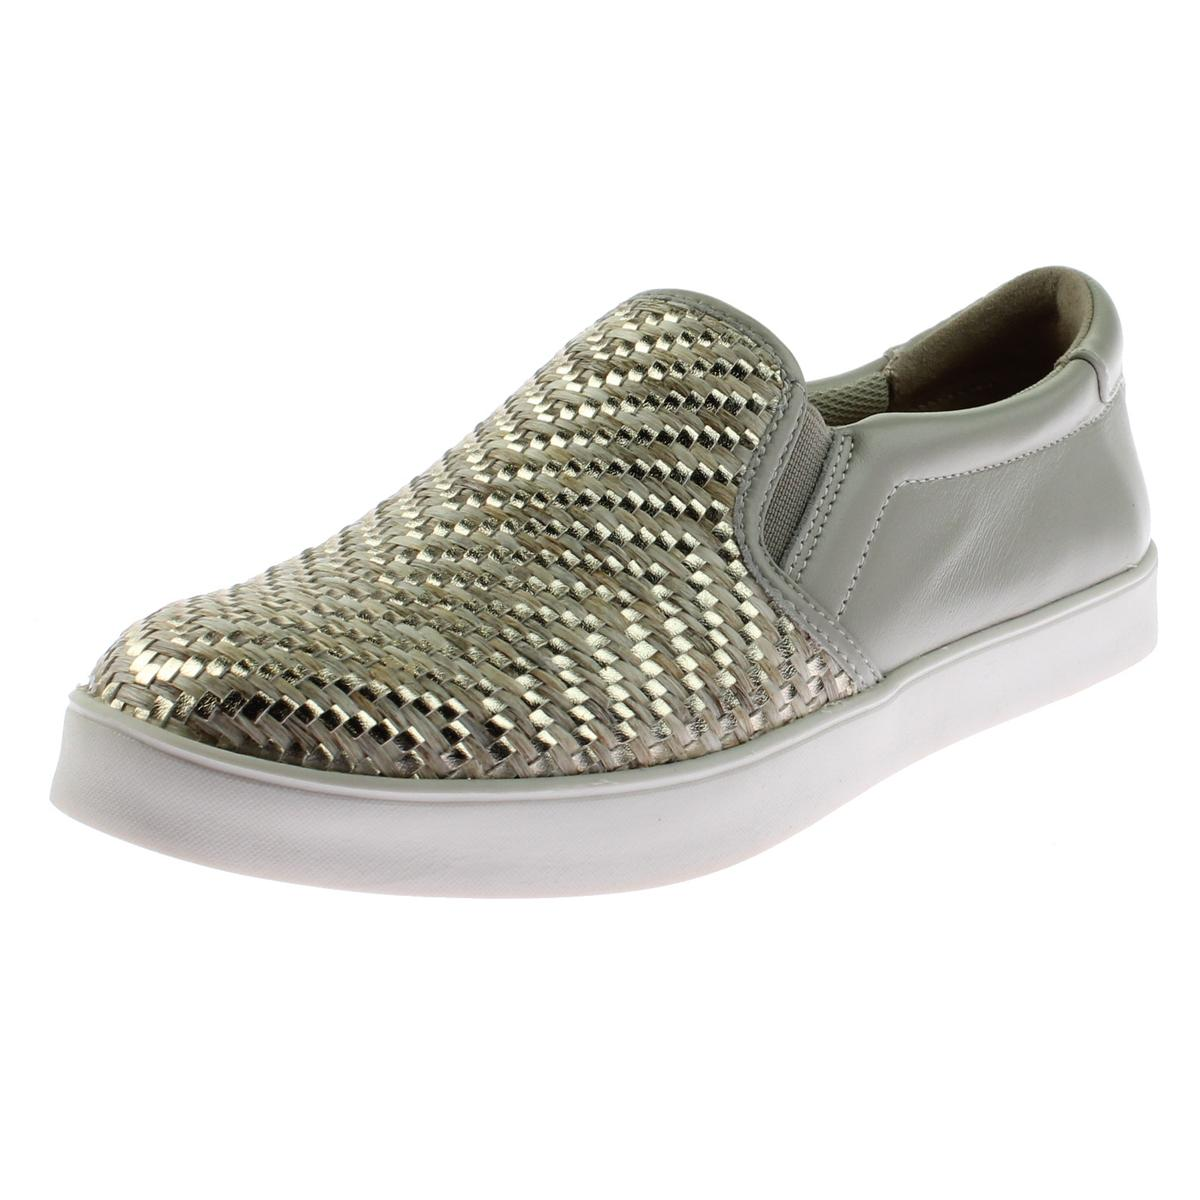 Dr. Scholl's Womens Scout Weave Metallic Woven Fashion Sneakers